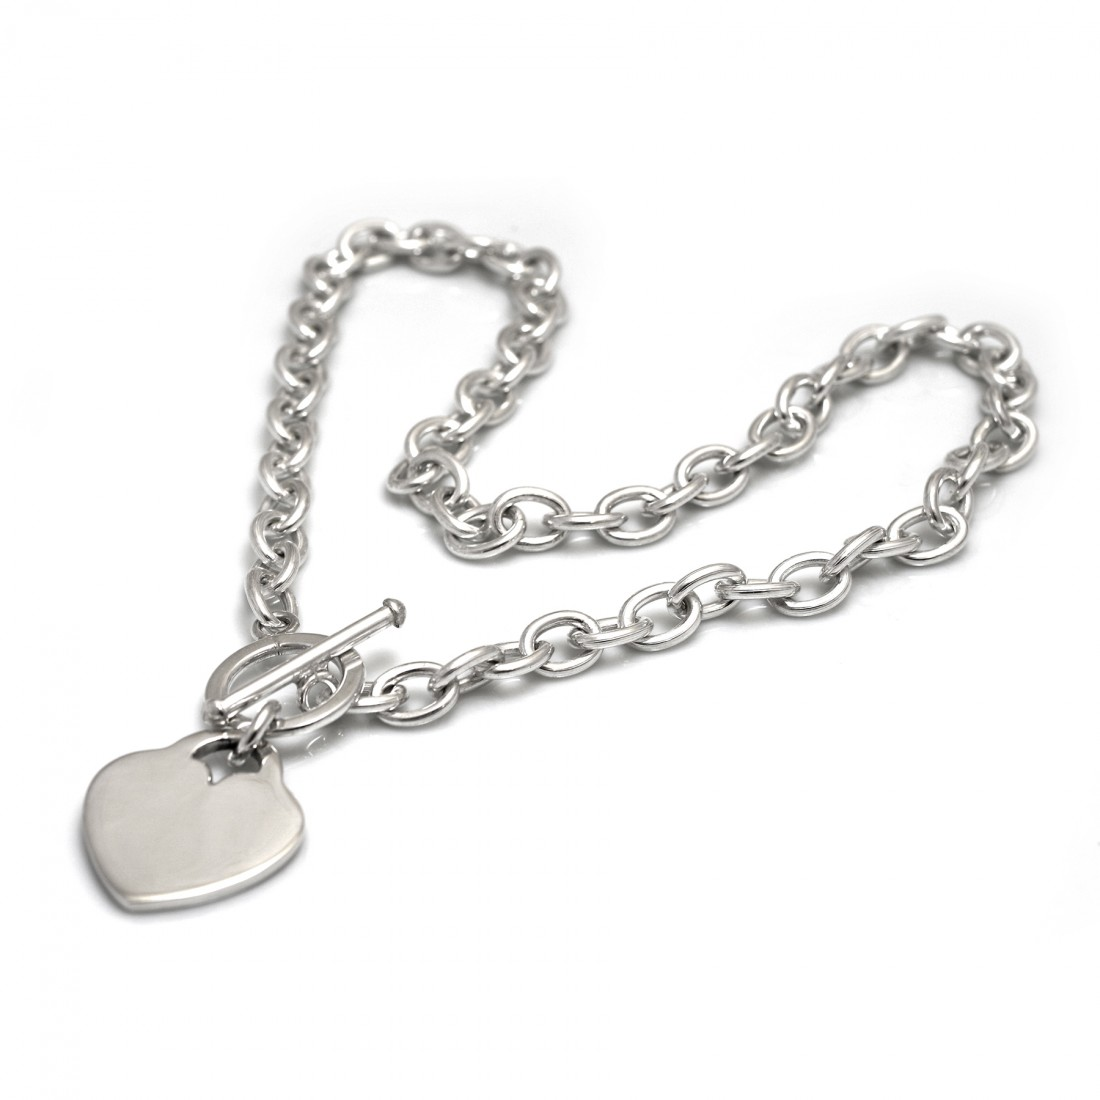 Chunky Flat Heart Sterling Silver Fob Necklace